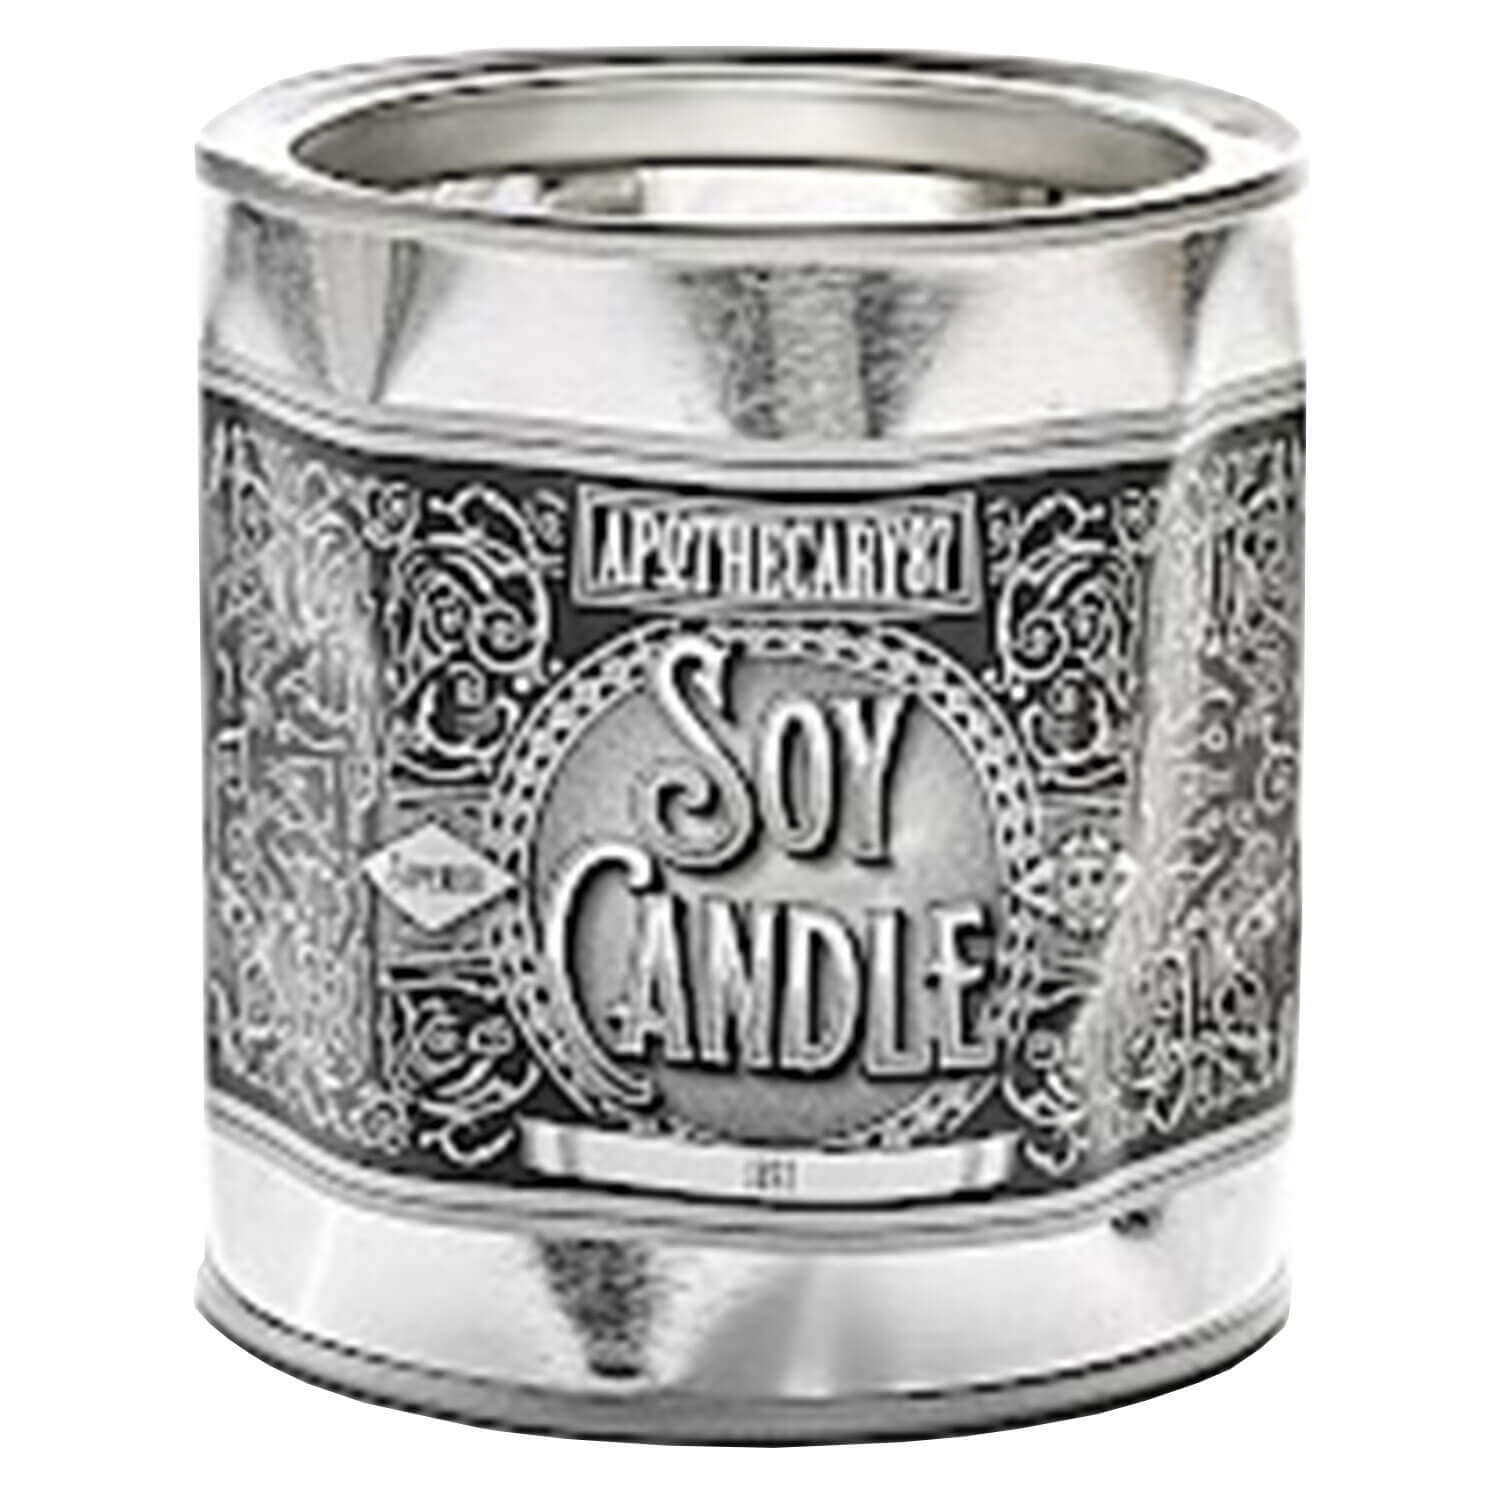 Apothecary87 Grooming - Soy Wax Candle 1893 Fragrance